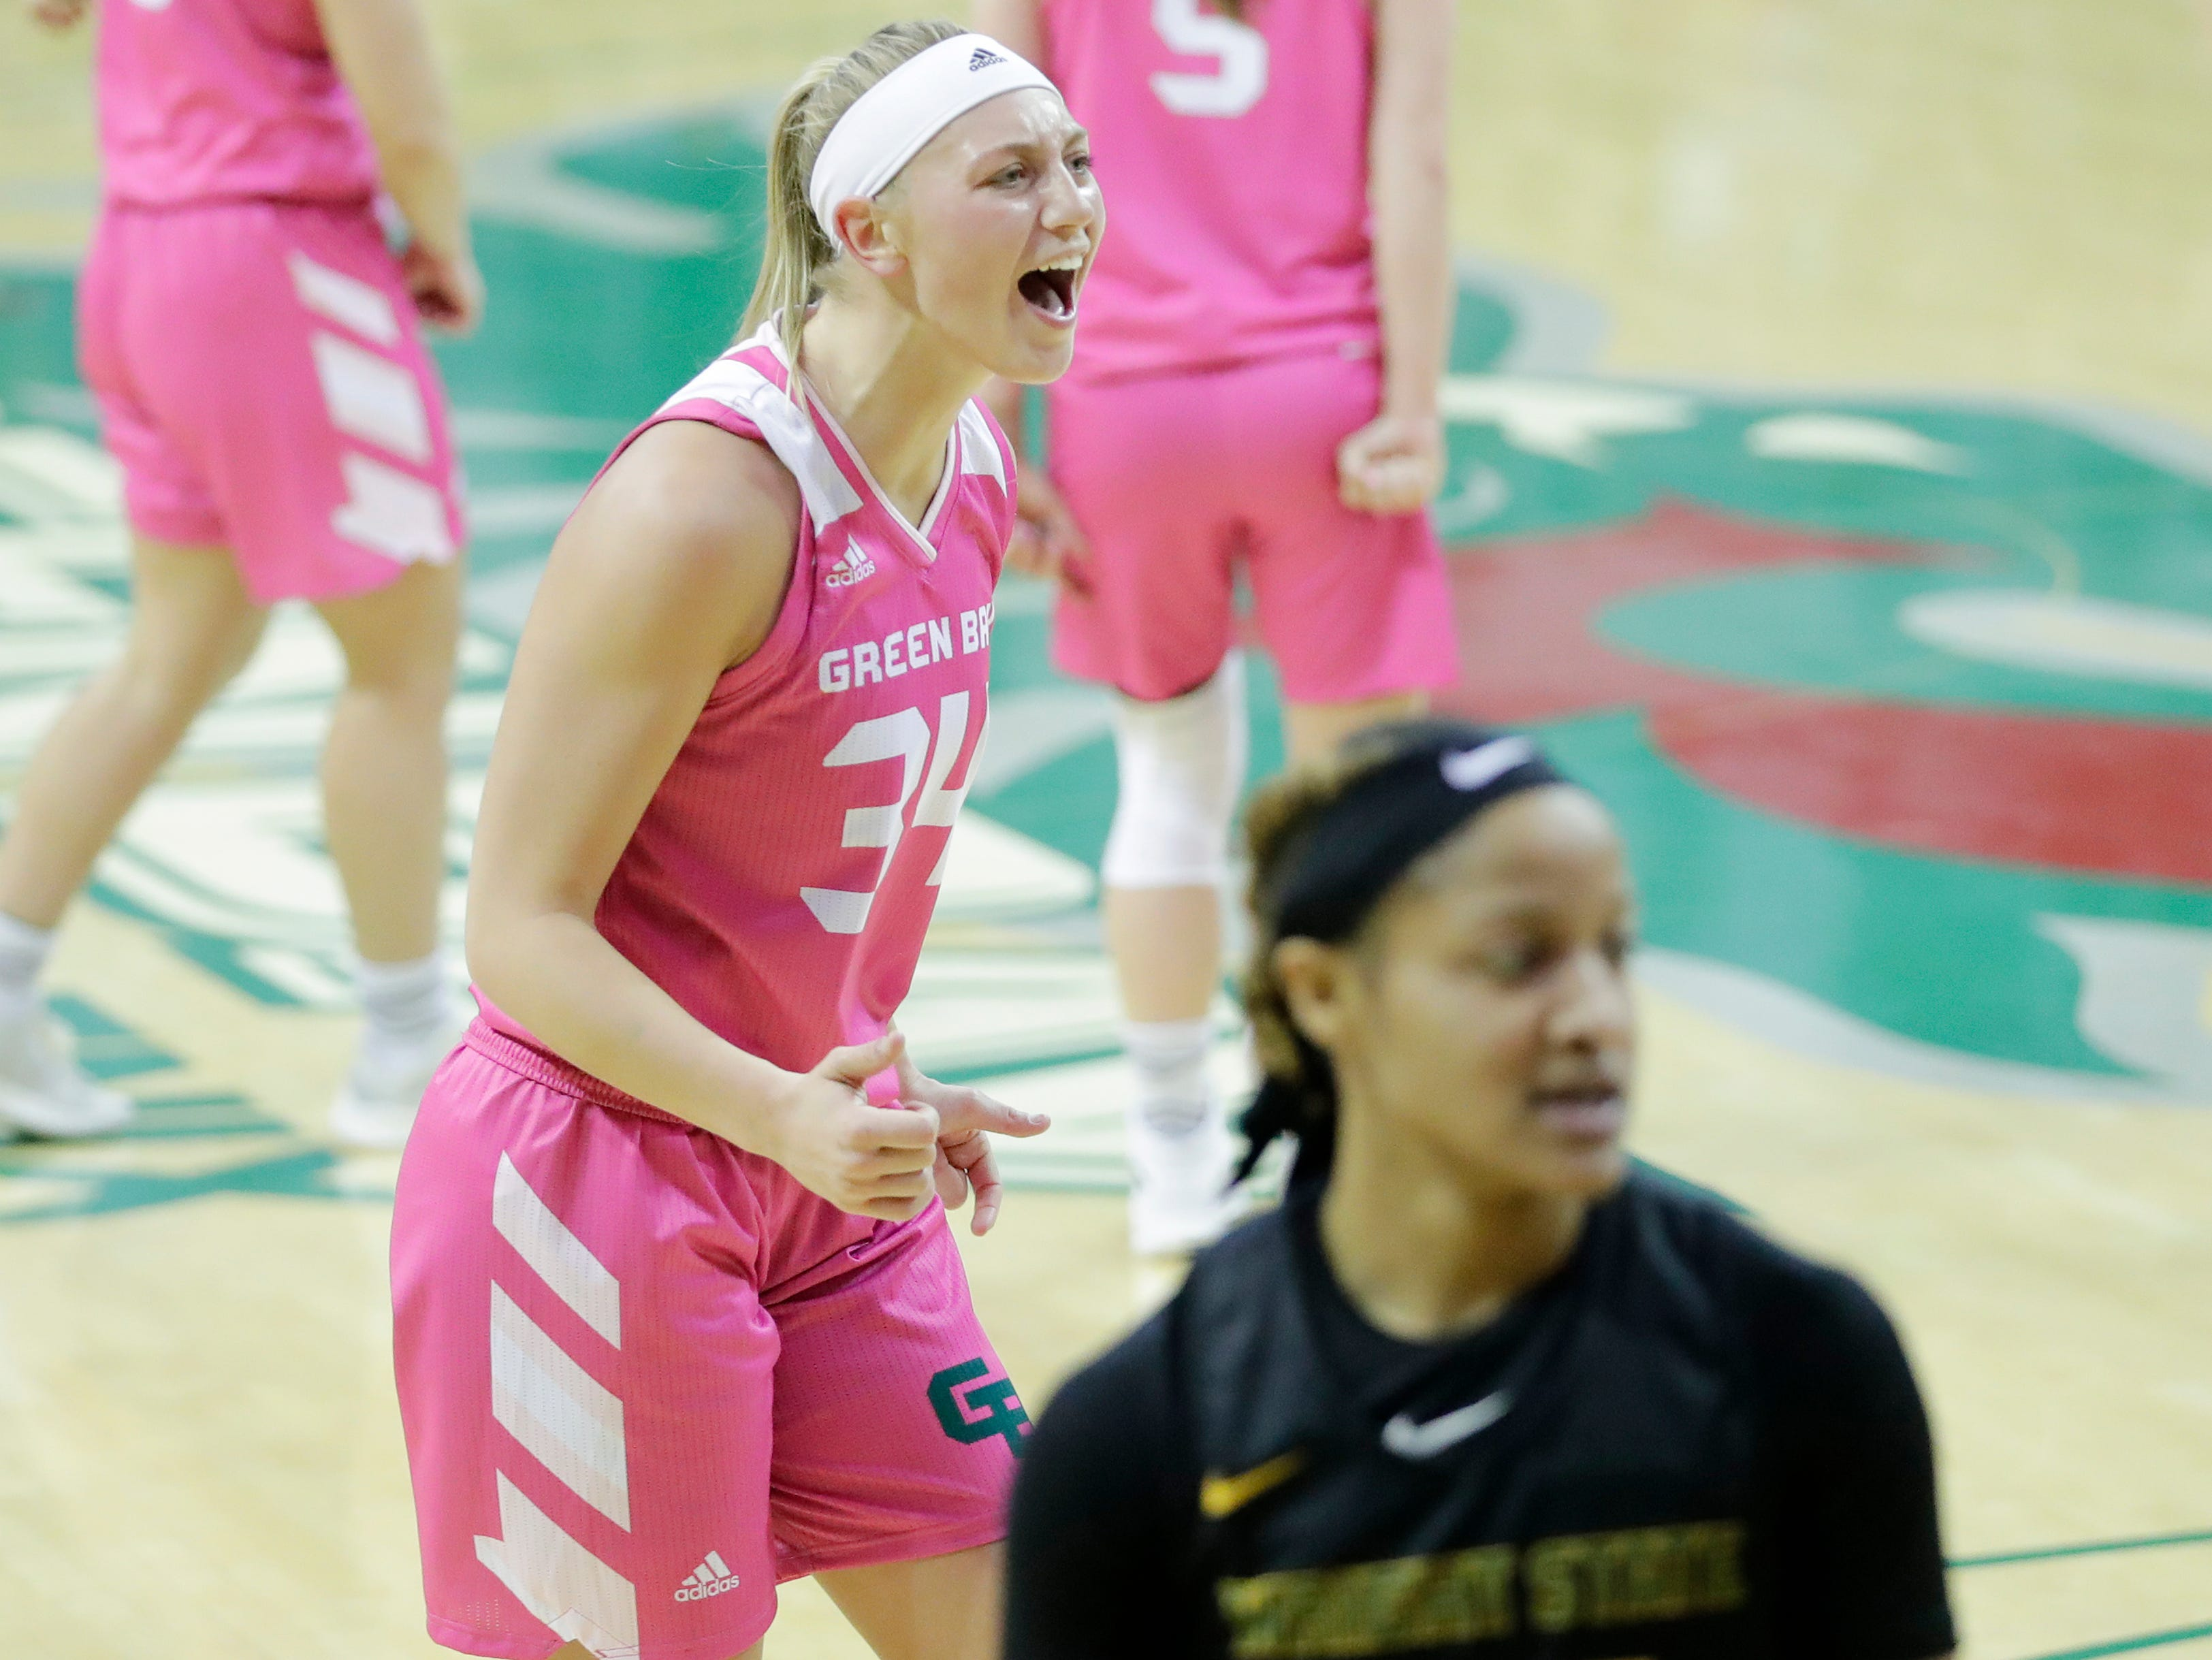 Green Bay Phoenix forward Carly Mohns (34) reacts during the 2nd quarter against the Wright State Raiders in a Horizon League women's basketball game at the Kress Center on Saturday, February 9, 2019 in Green Bay, Wis.